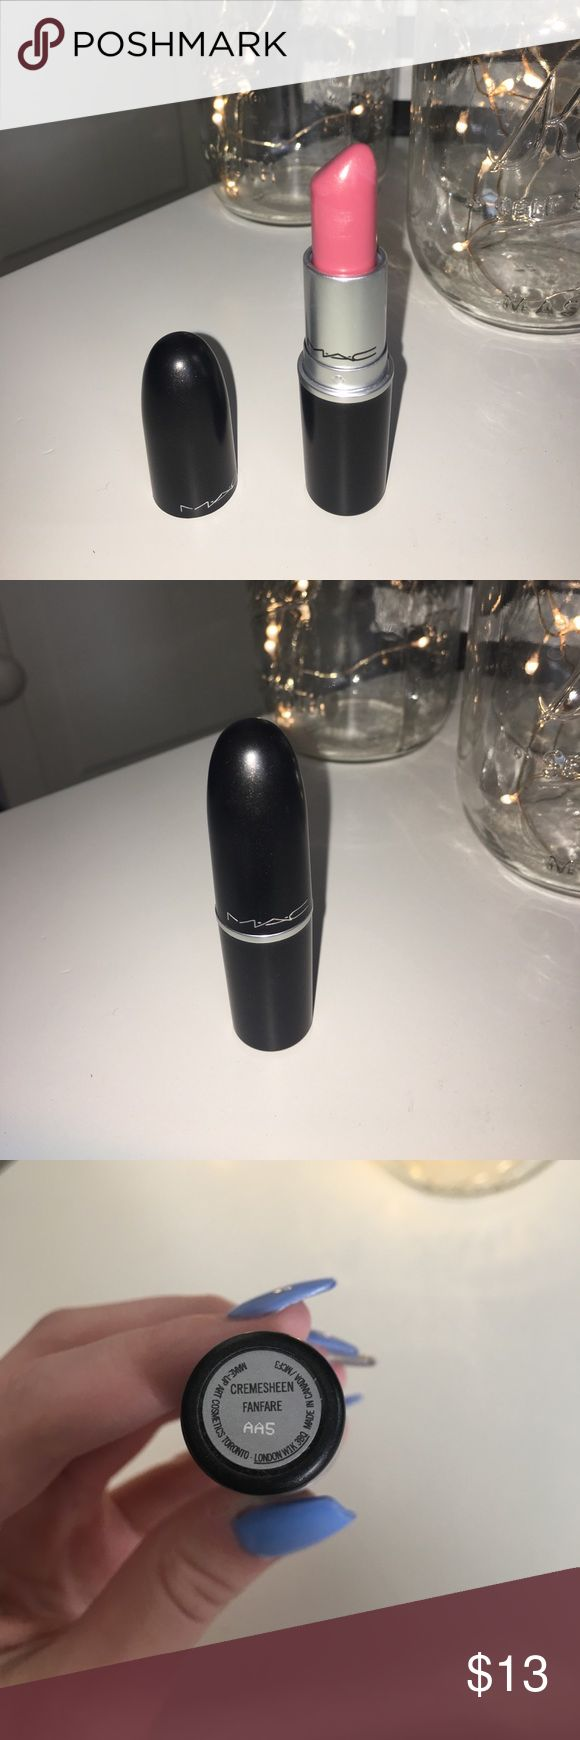 MAC lipstick MAC lipstick in the color cremesheen fanfare. Worn once (sanitized) and swatched for the photo!! Feel free to make offers and ask questions❤️😊 MAC Cosmetics Makeup Lipstick